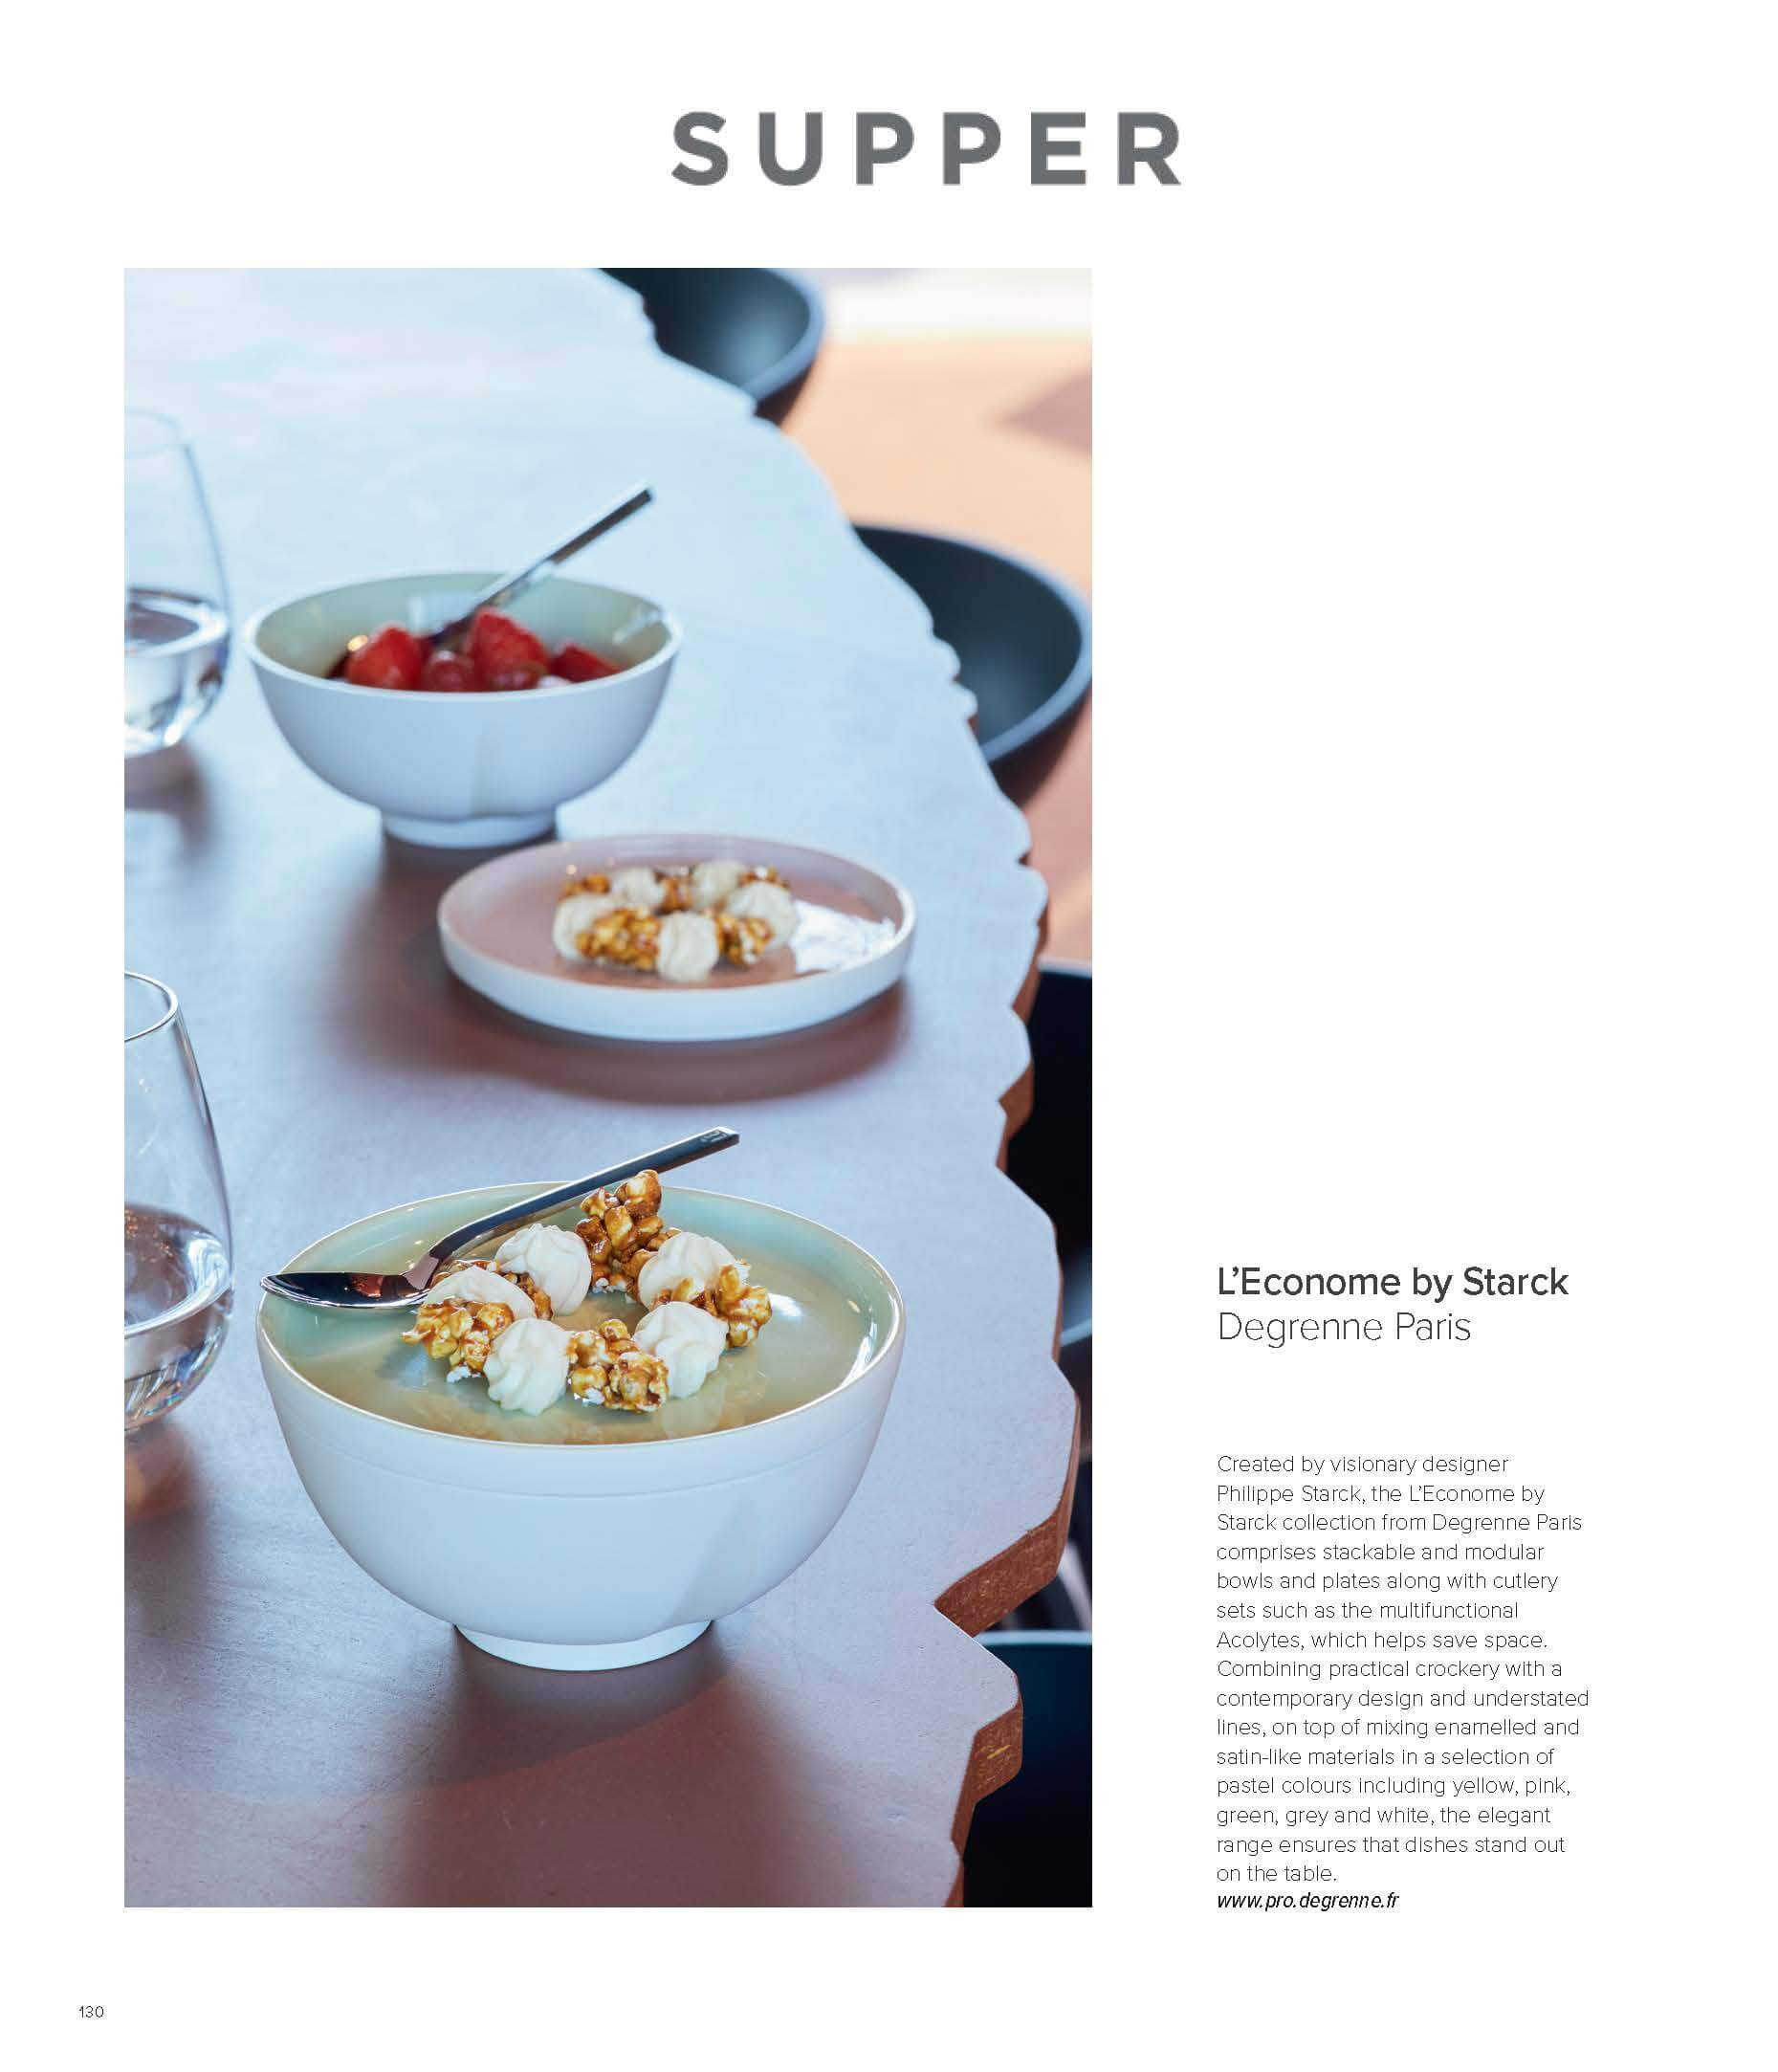 SUPPER MAGAZINE - Degrenne